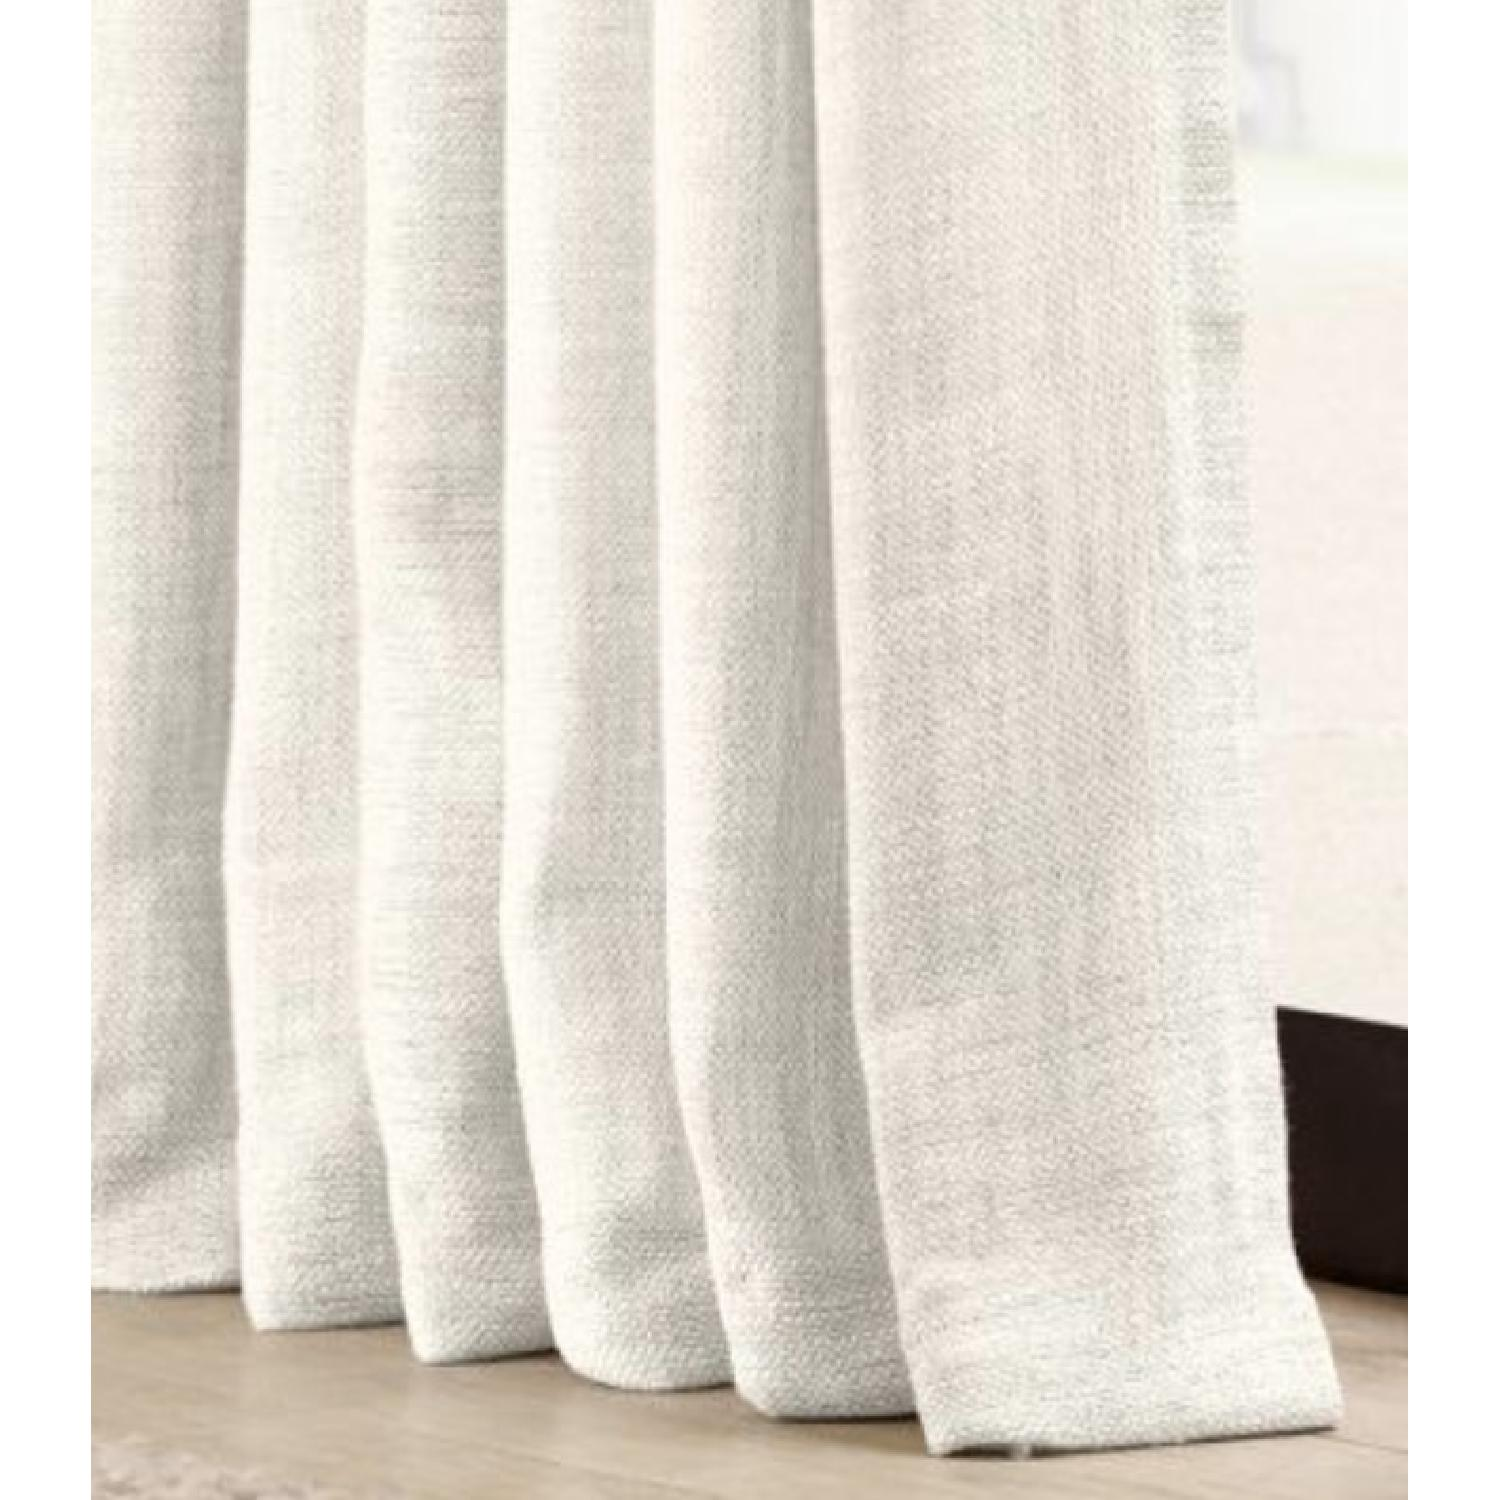 Restoration Hardware Natural Belgian Linen Drapes-1